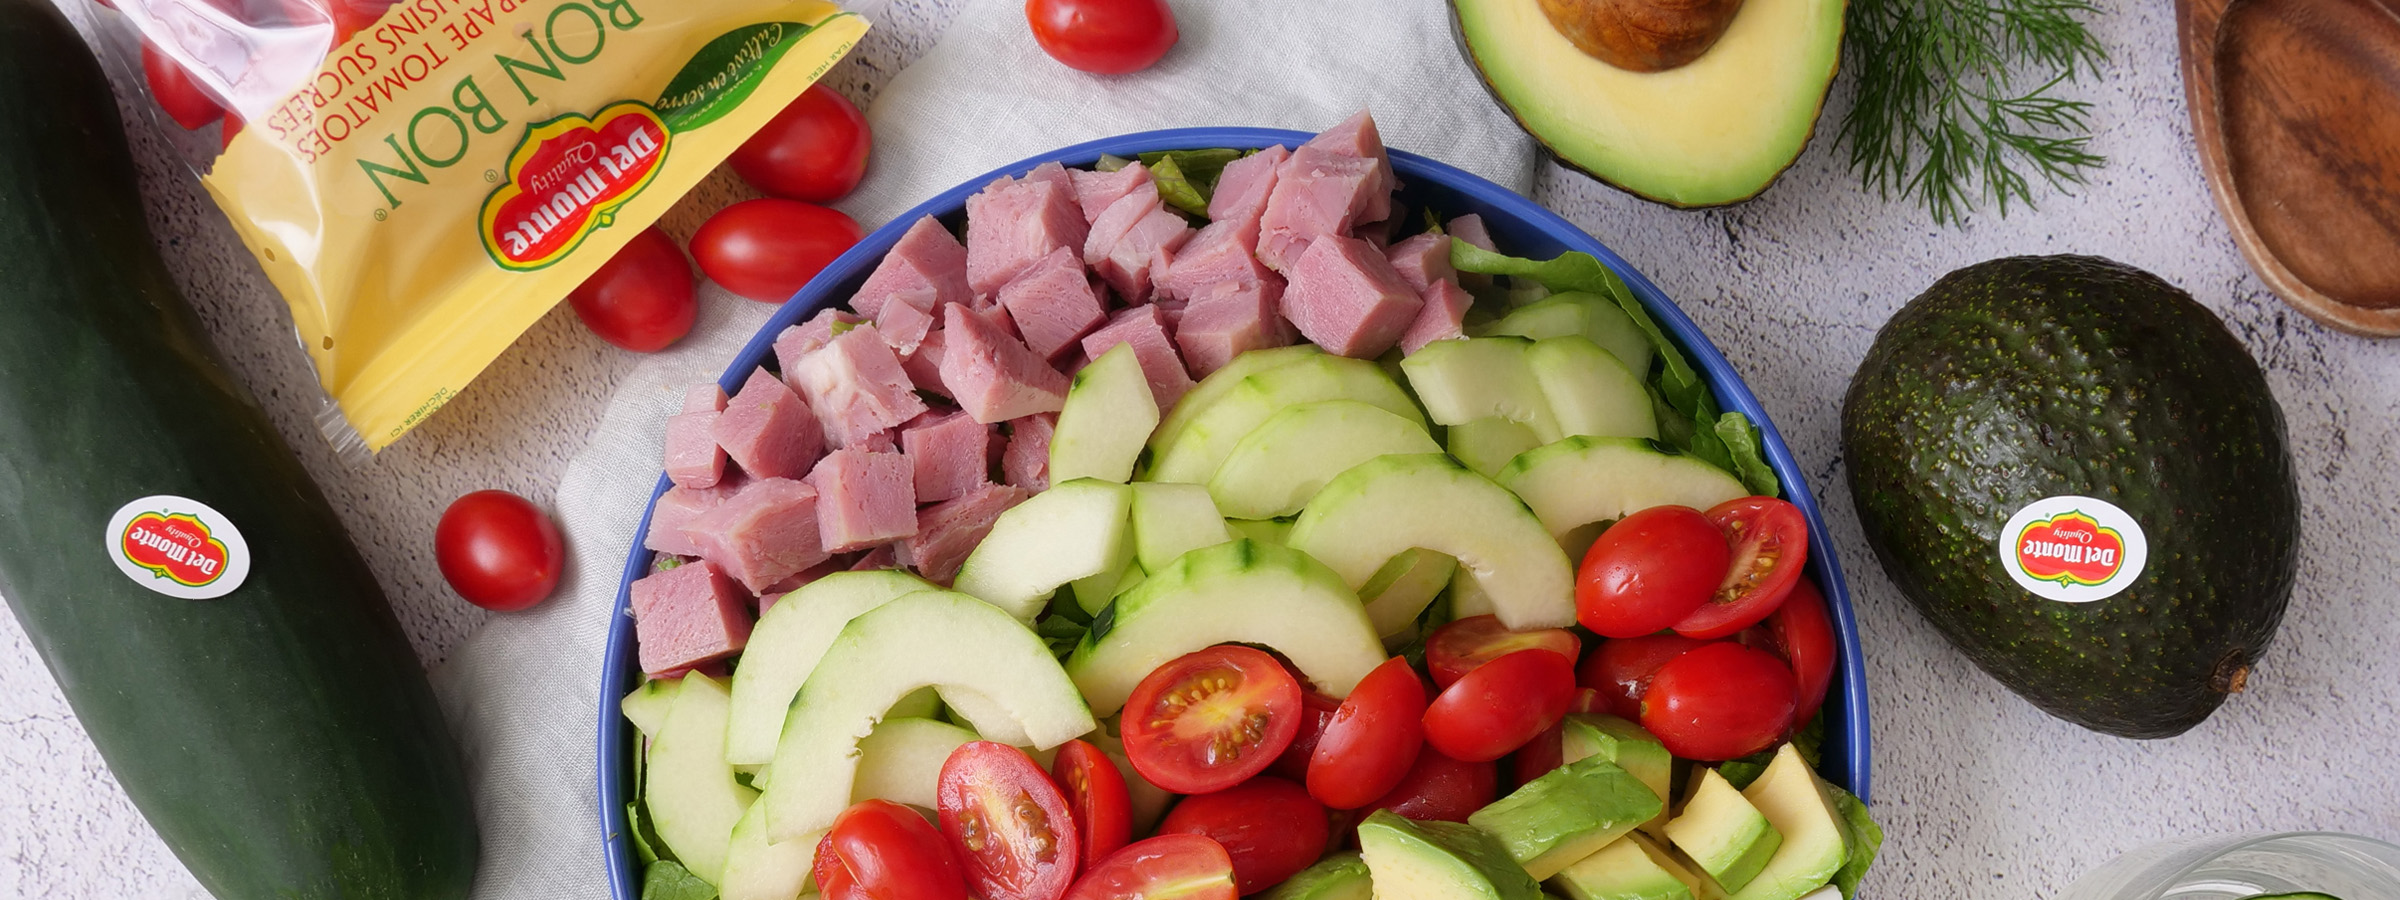 Homepage-Banner_Try-Our-Recipes_Hearty-Chopped-Salad-with-Ham-Avocado_Dec-2019